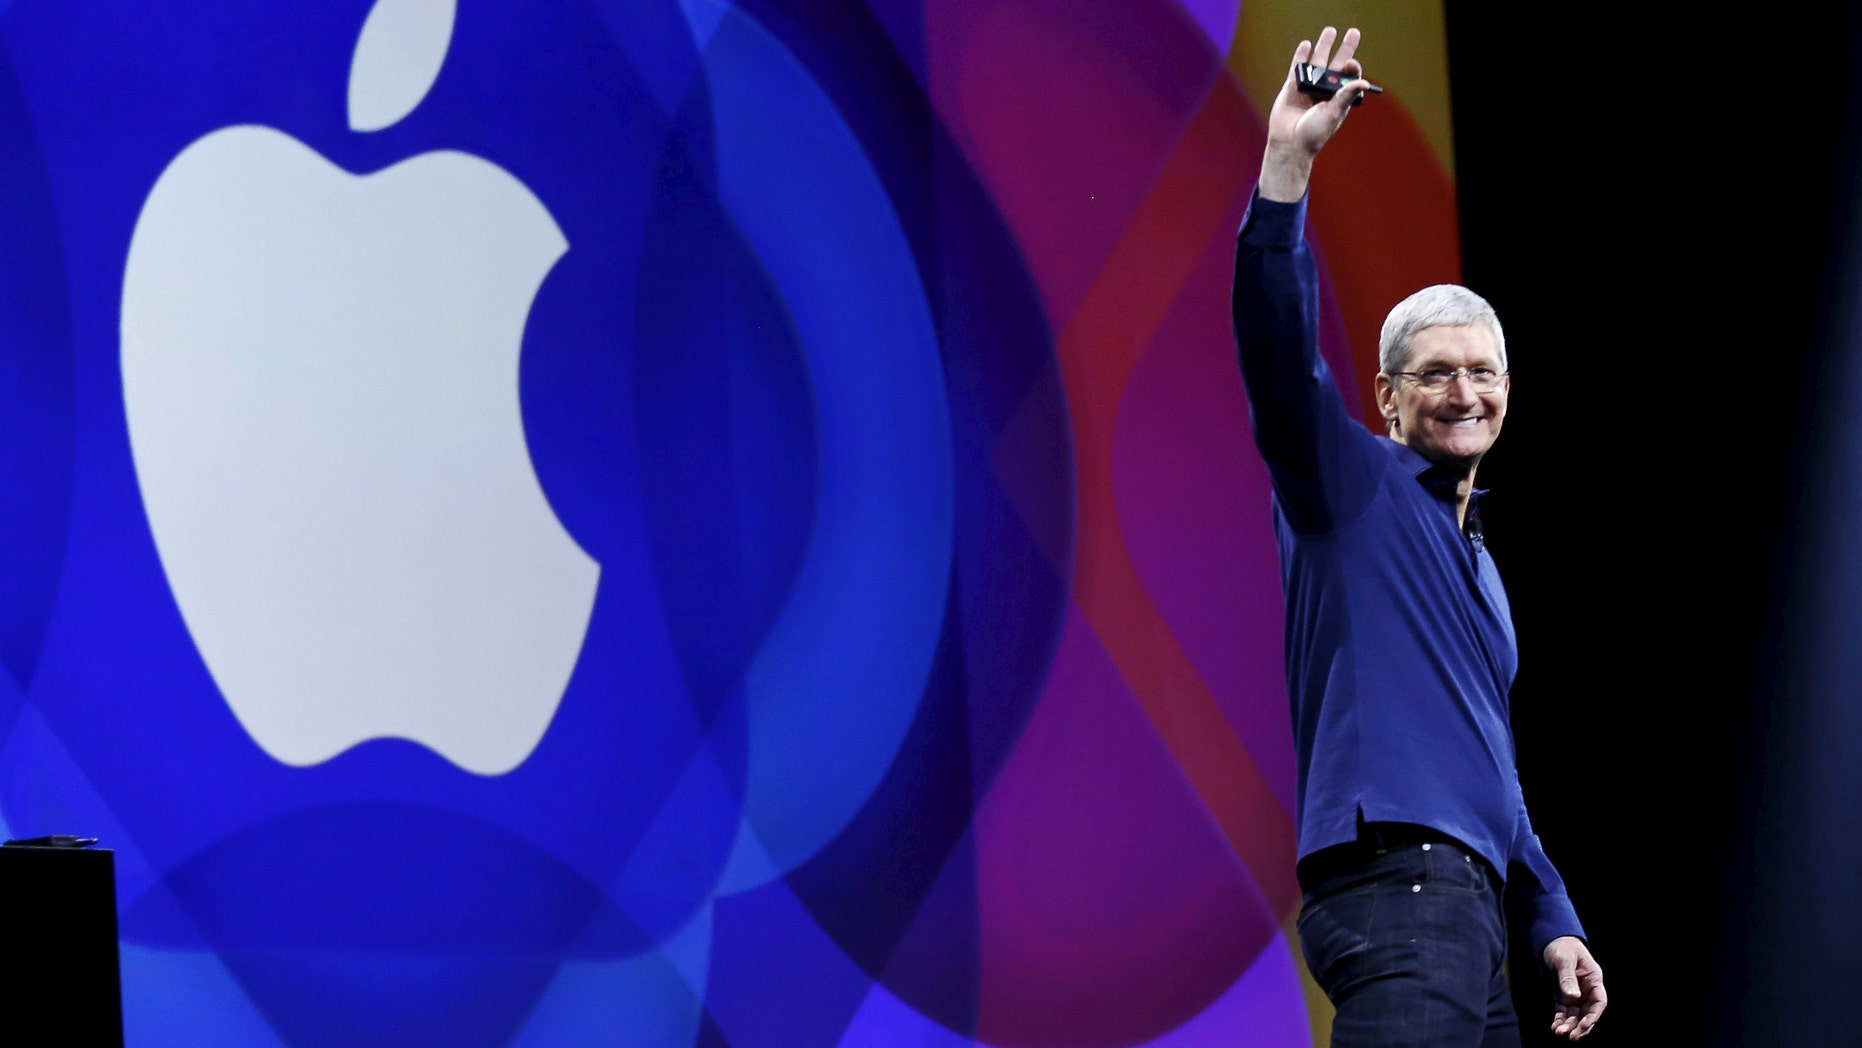 Apple CEO Tim Cook waves as he arrives on stage to deliver his keynote address at the Worldwide Developers Conference in San Francisco, California, United States June 8, 2015. (REUTERS/Robert Galbraith)